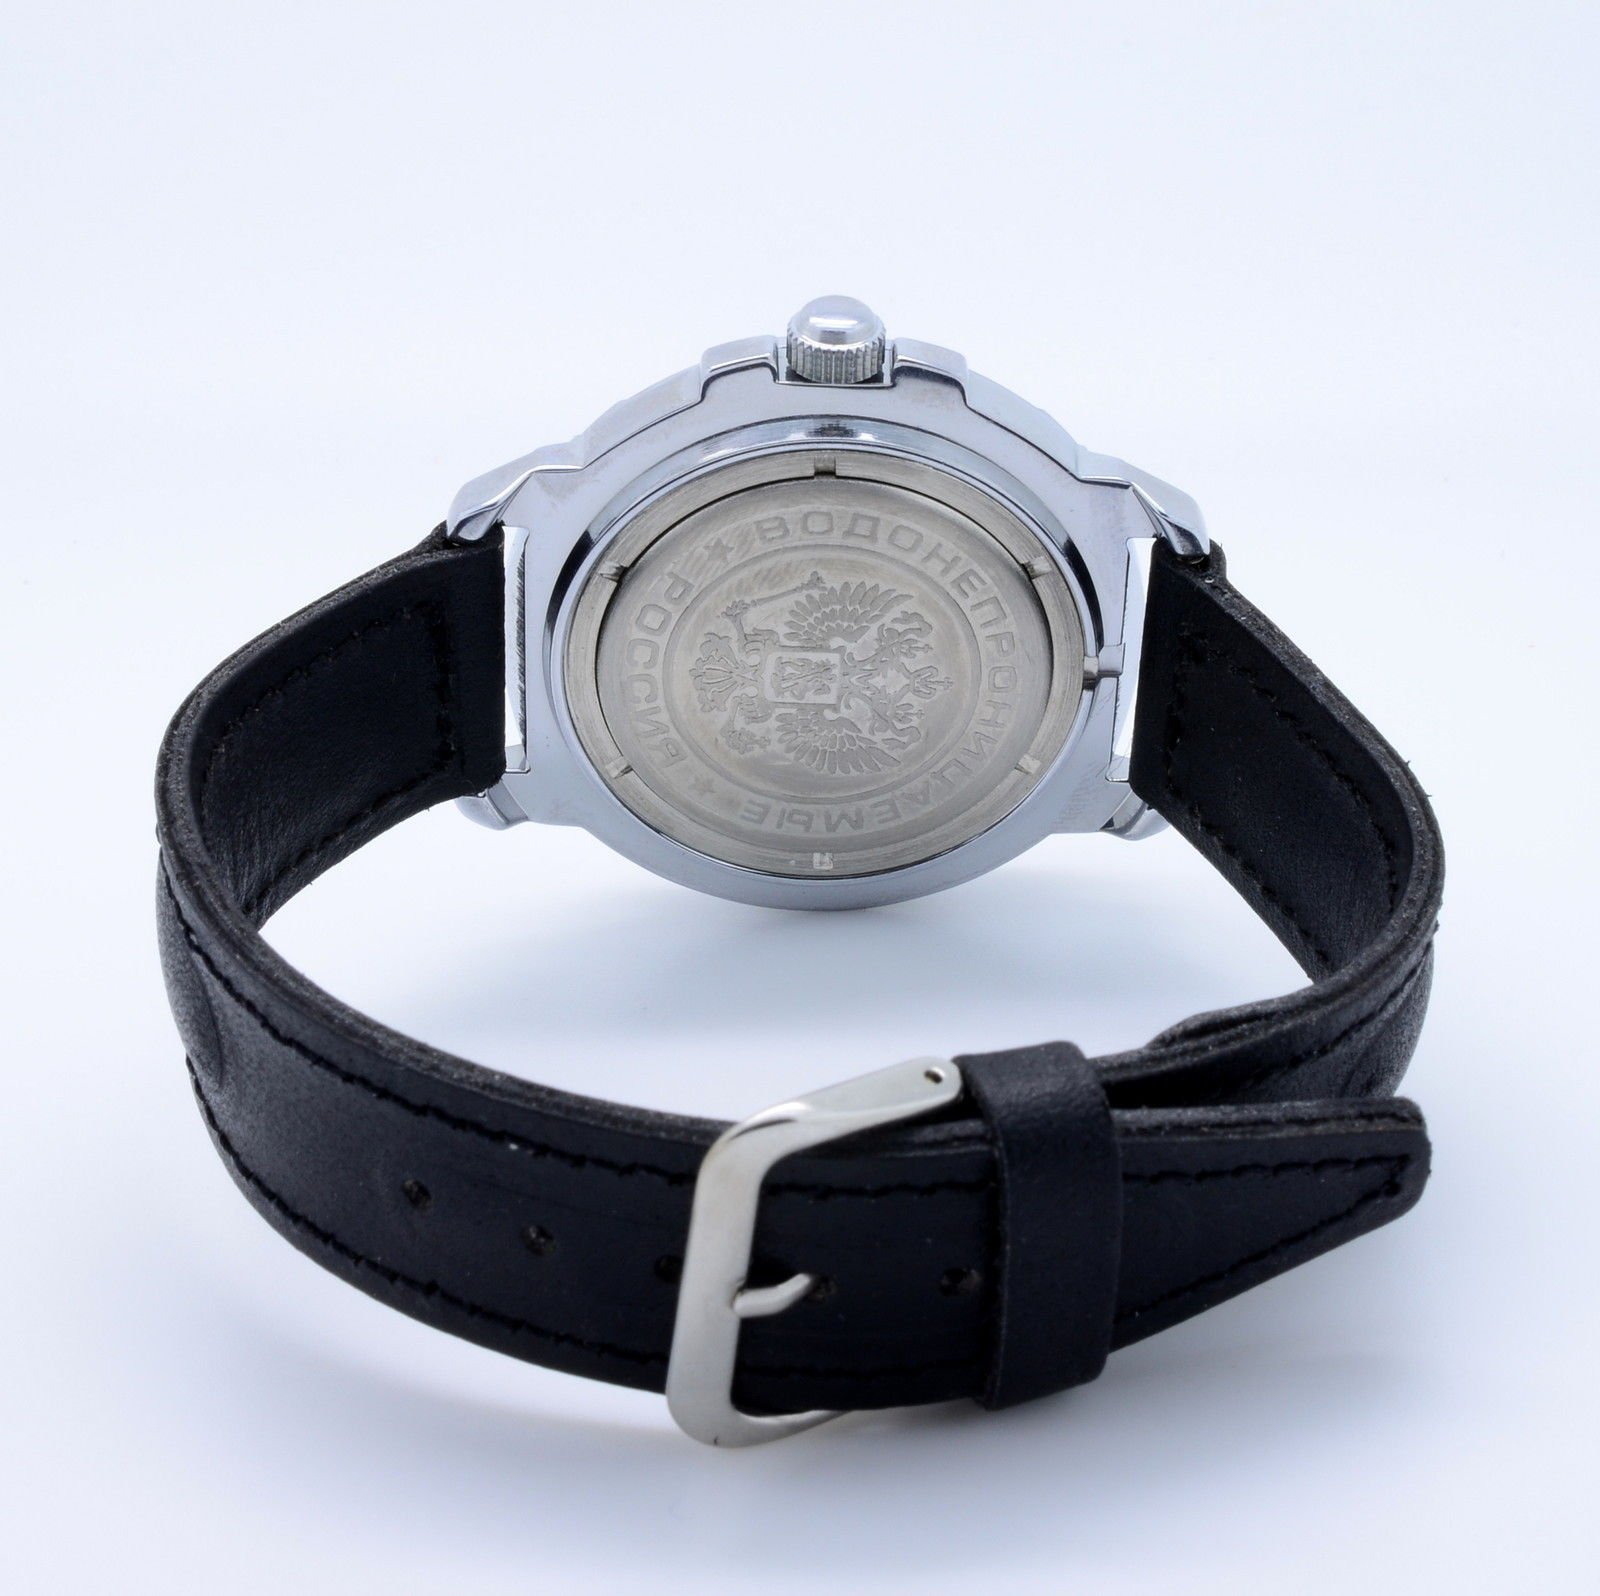 Vostok Komandirskie 431139 / 2414a Military Special Navy Commander Russian Wa...